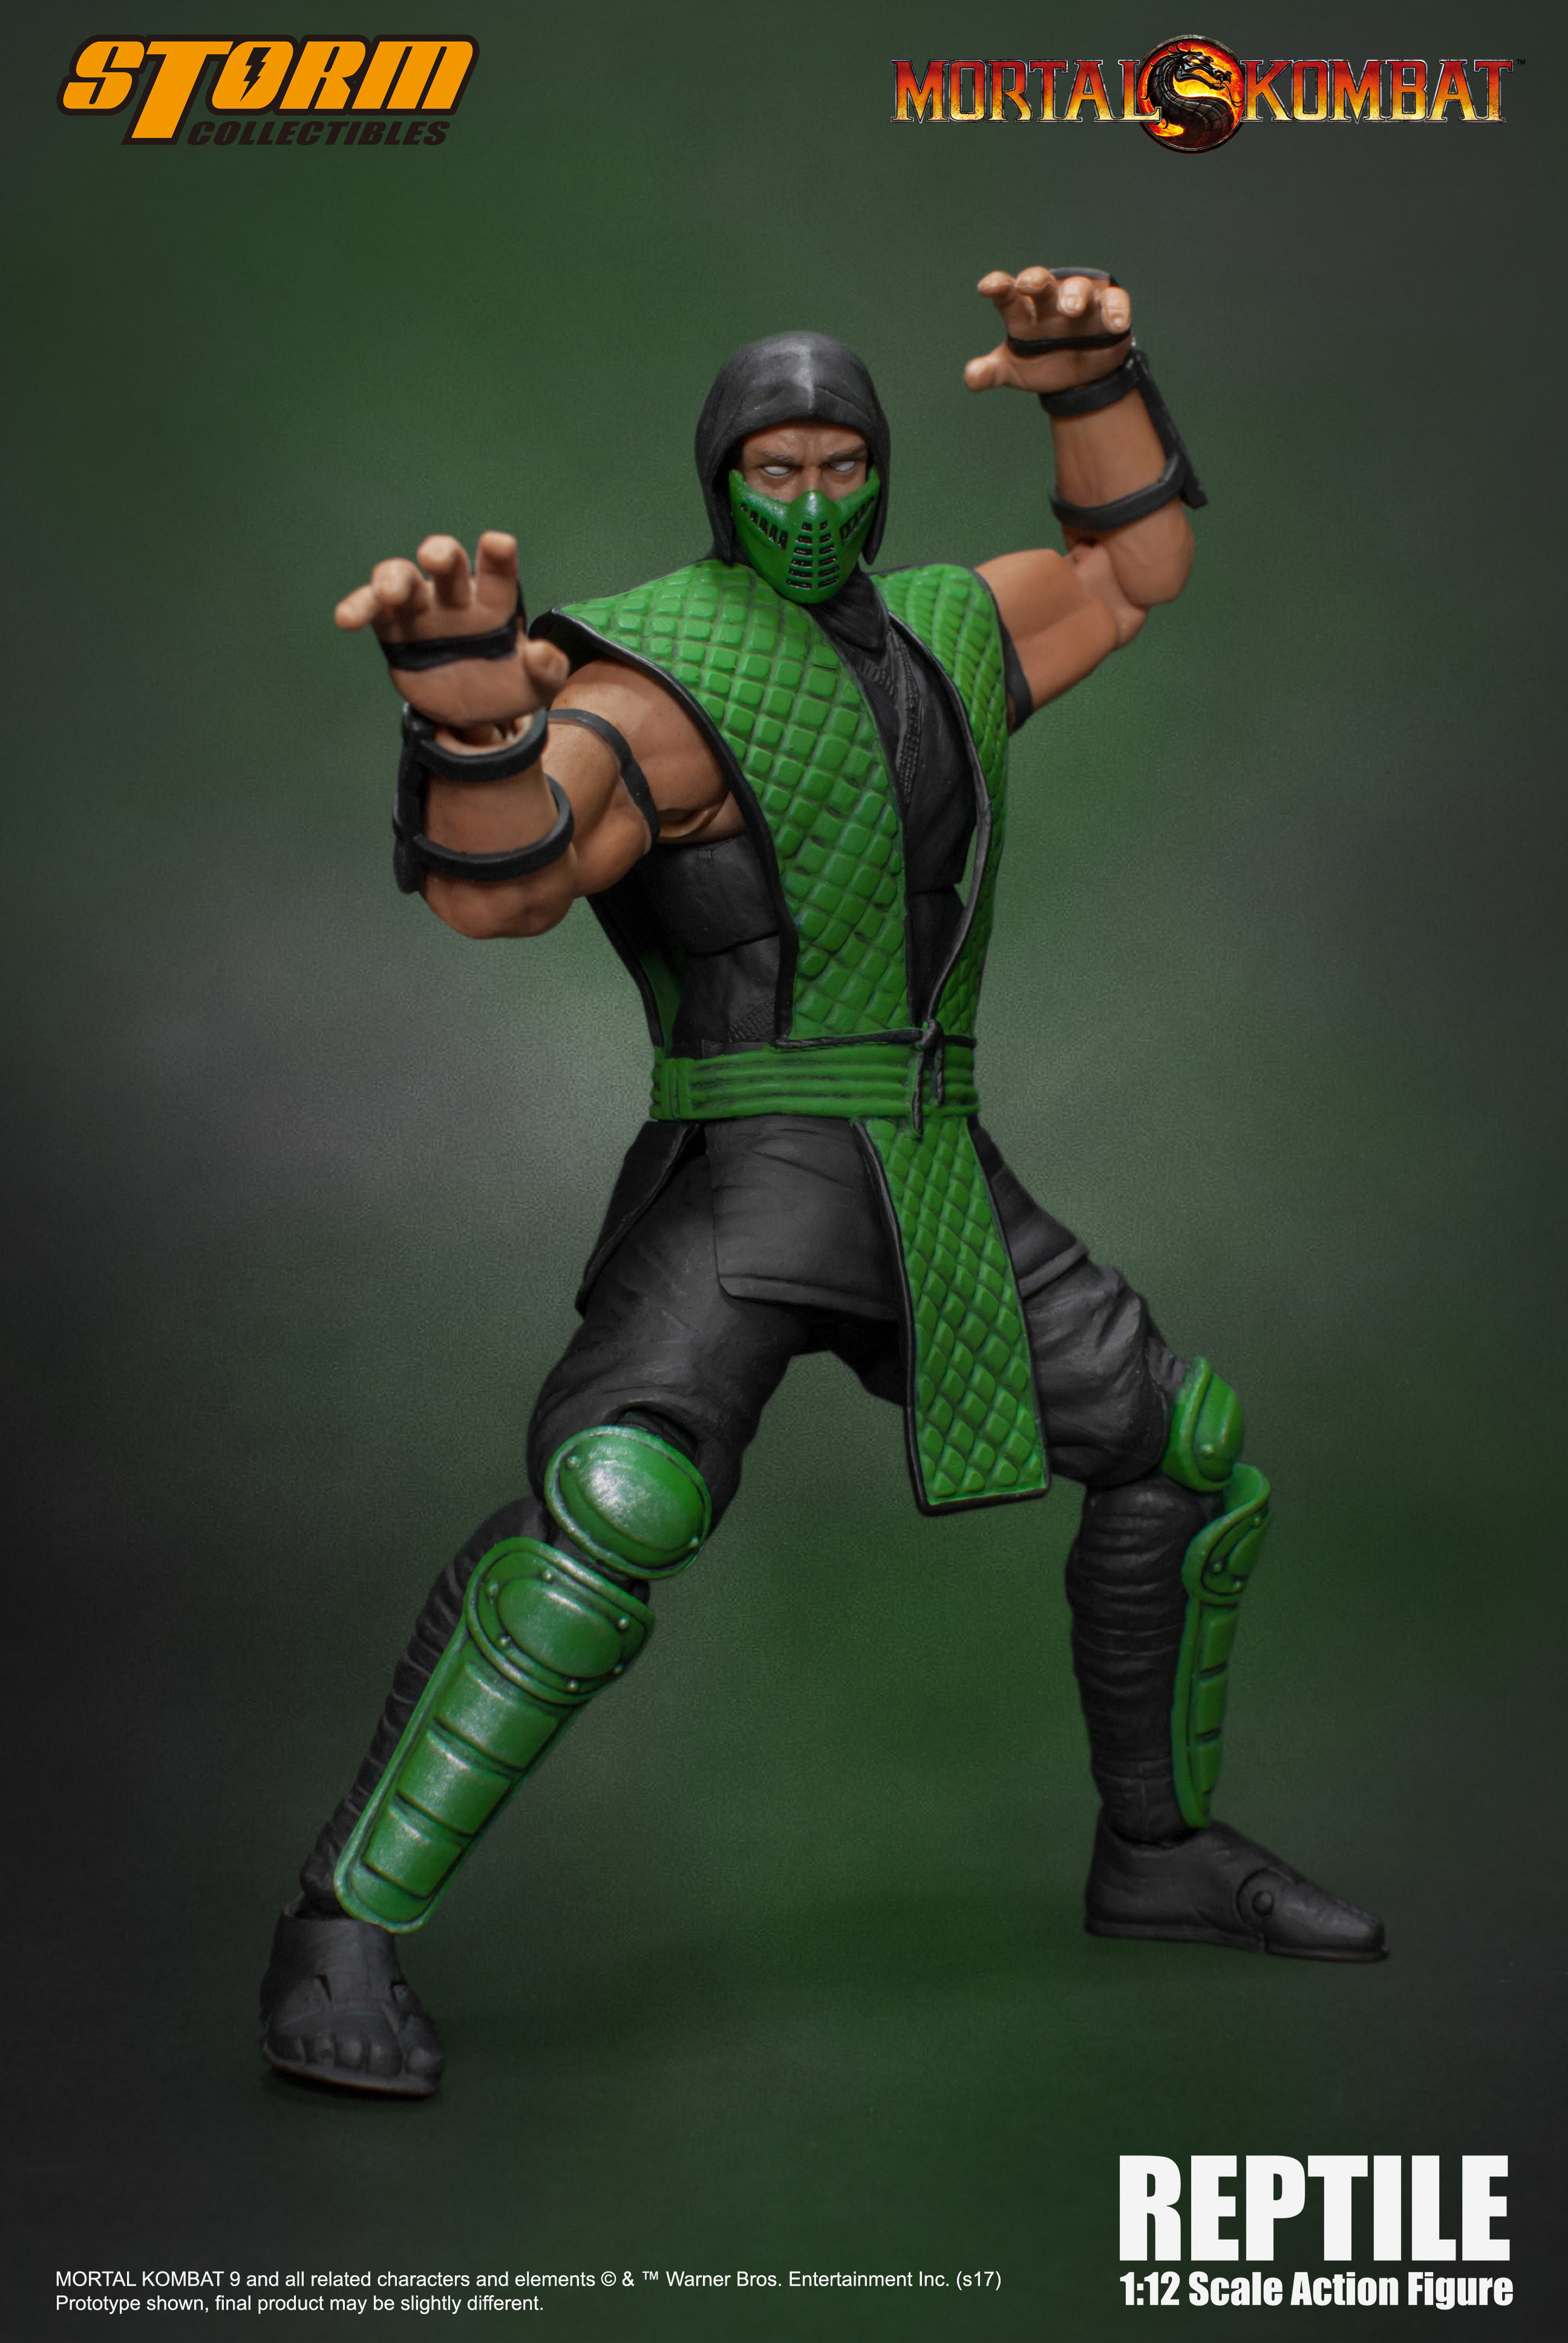 Mortal Kombat - Reptile 1:12 Action Figure